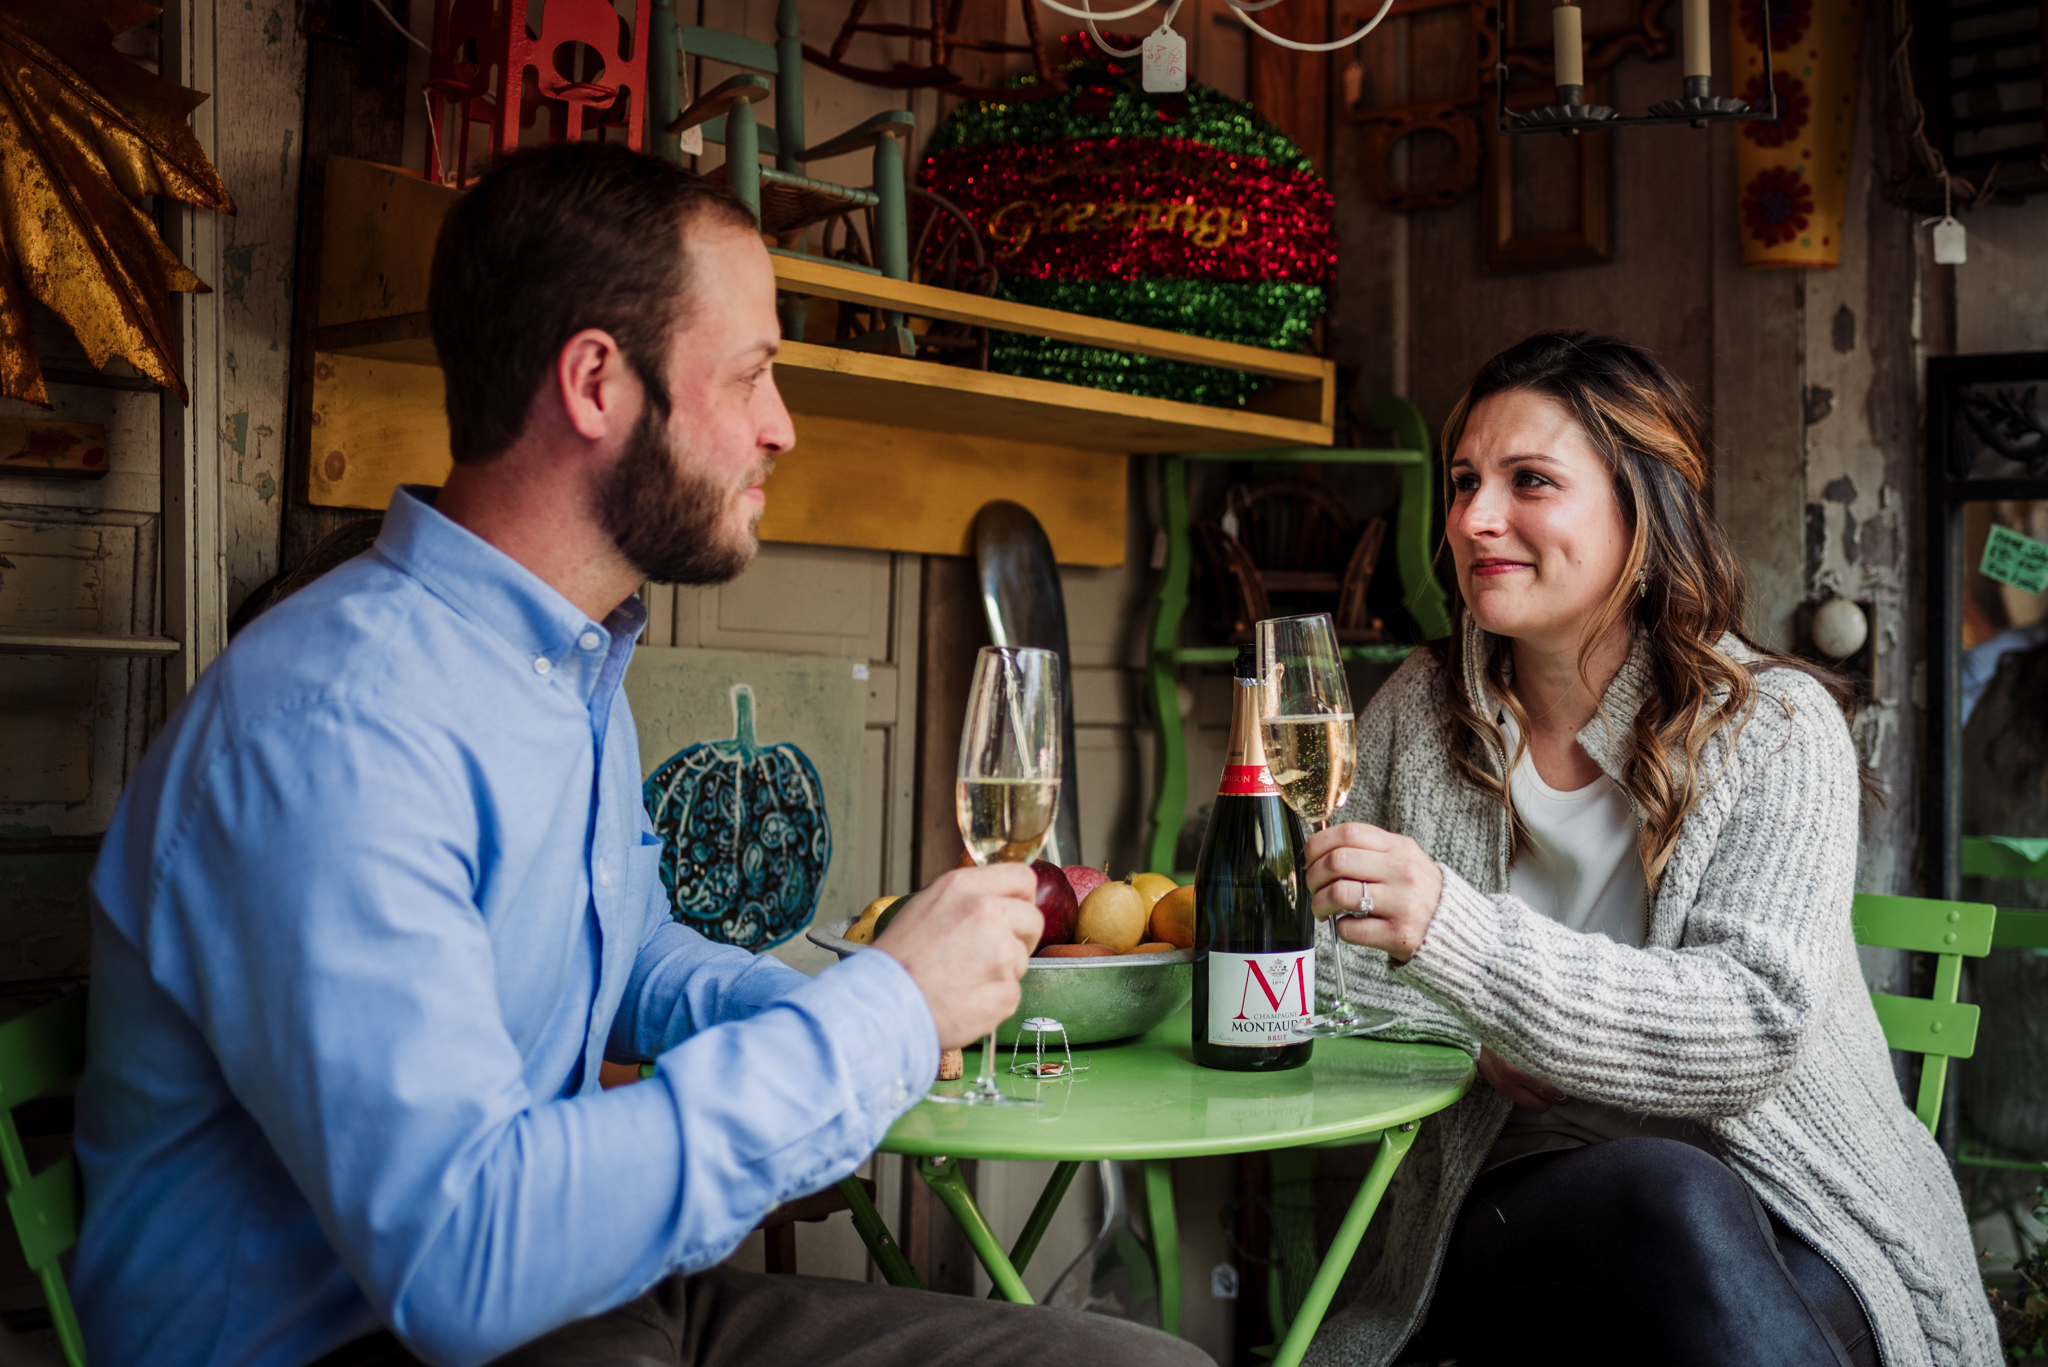 toasting-their-dating-anniversary-during-their-engagement-session.jpg